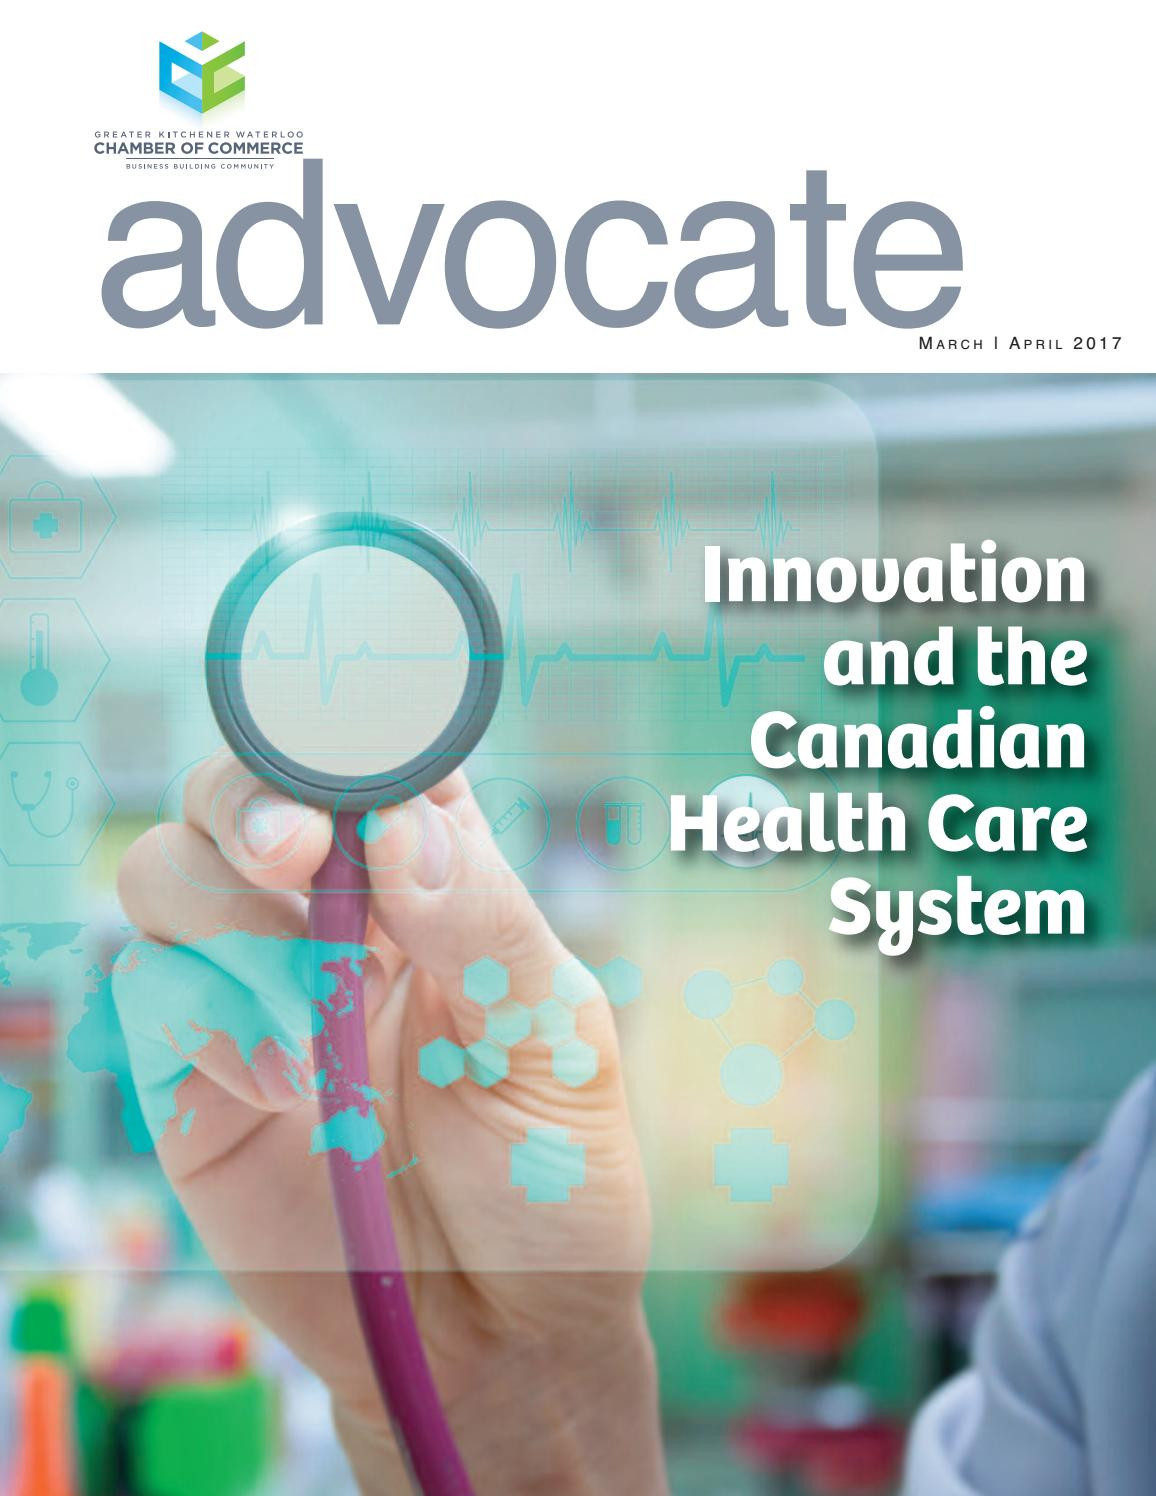 Advocate March April 2017 by Natalie Hemmerich - issuu